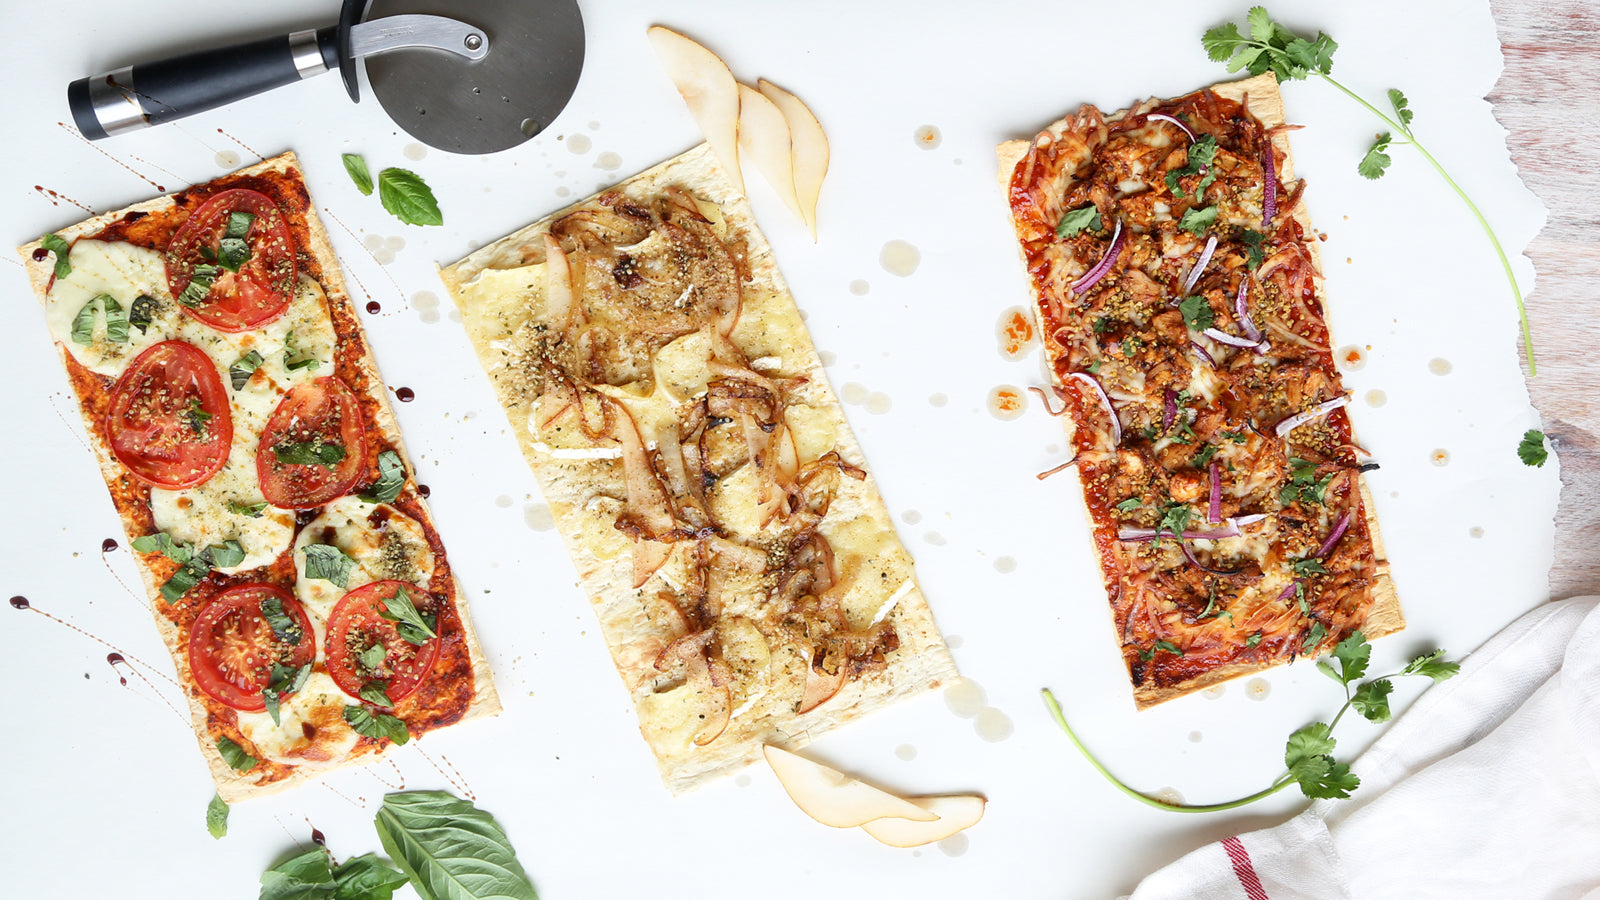 Hemp Flatbread Pizza - 3 Ways